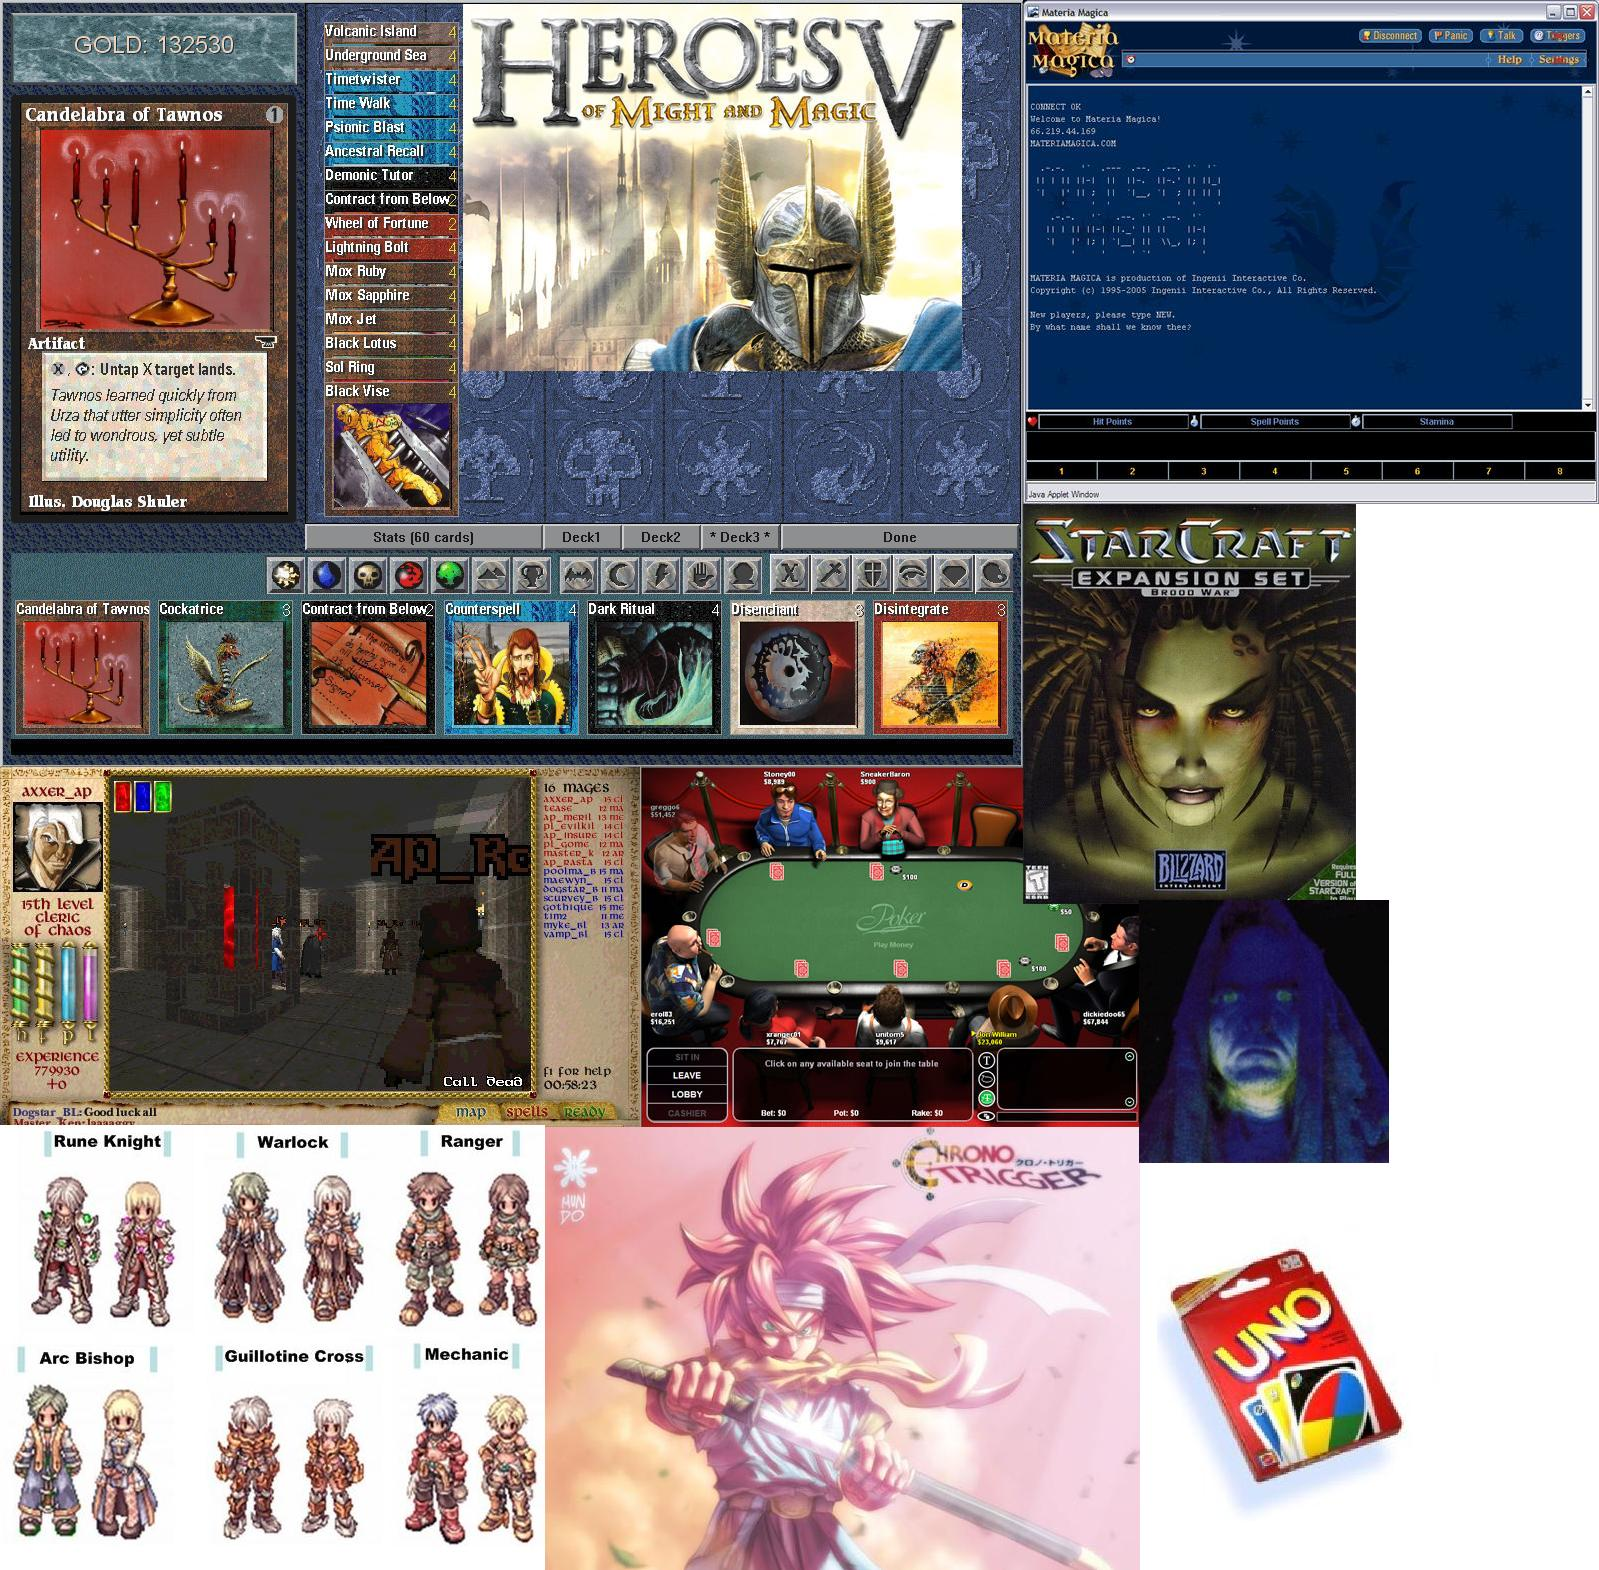 All_My_Favorite_Games Starcraft Magestorm Heroes Moongate Shandalar Ragnarok Poker UNO Atmosphere